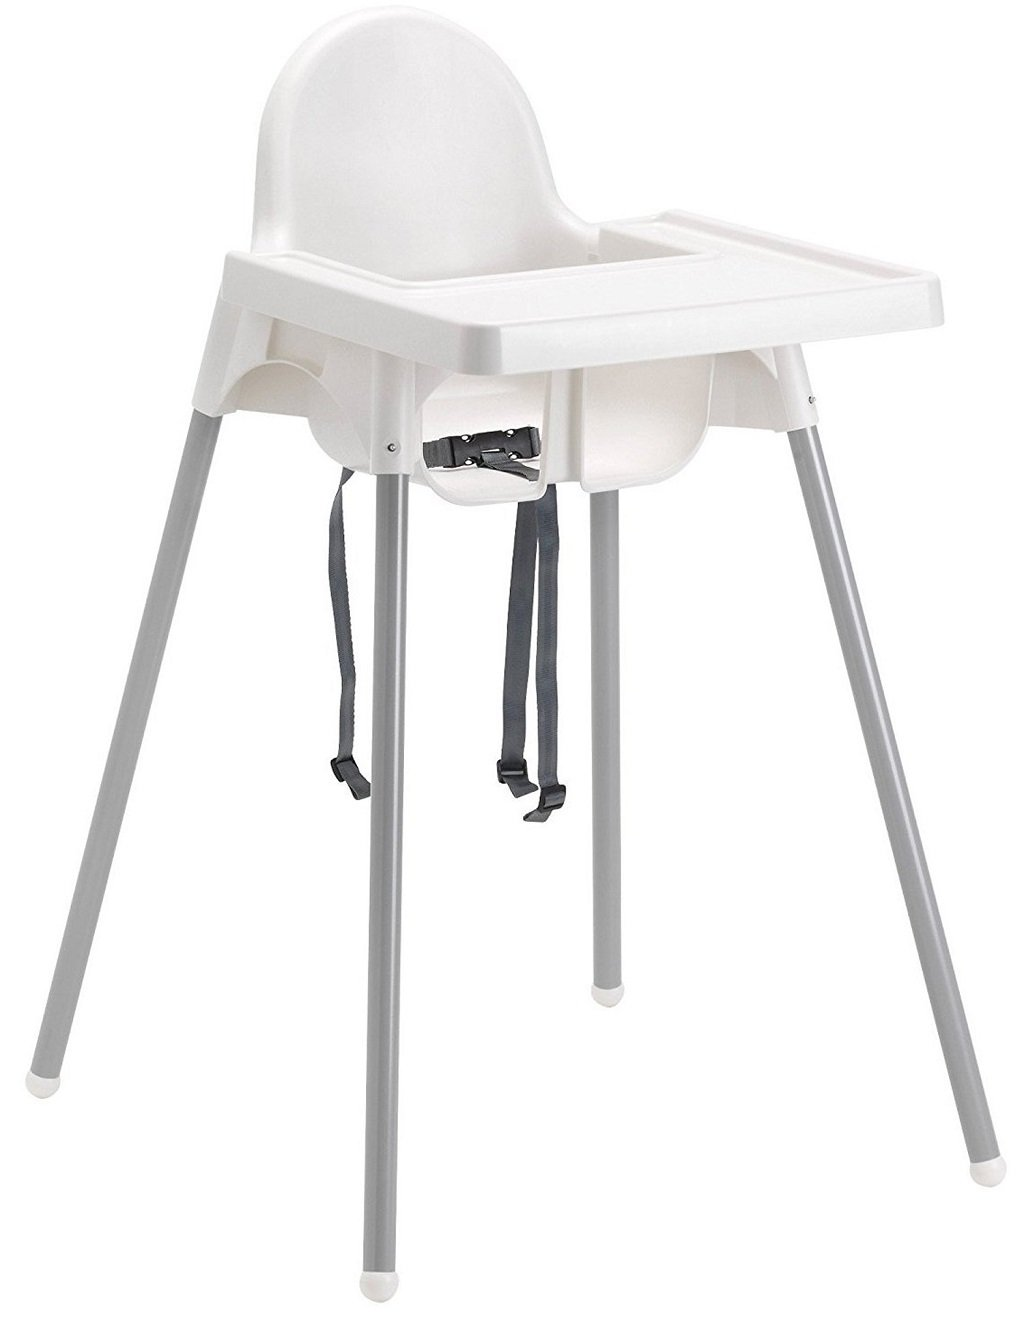 Ikea's ANTILOP Highchair with safety belt, white, silver color and ANTILOP Highchair white B00JBJFGAA